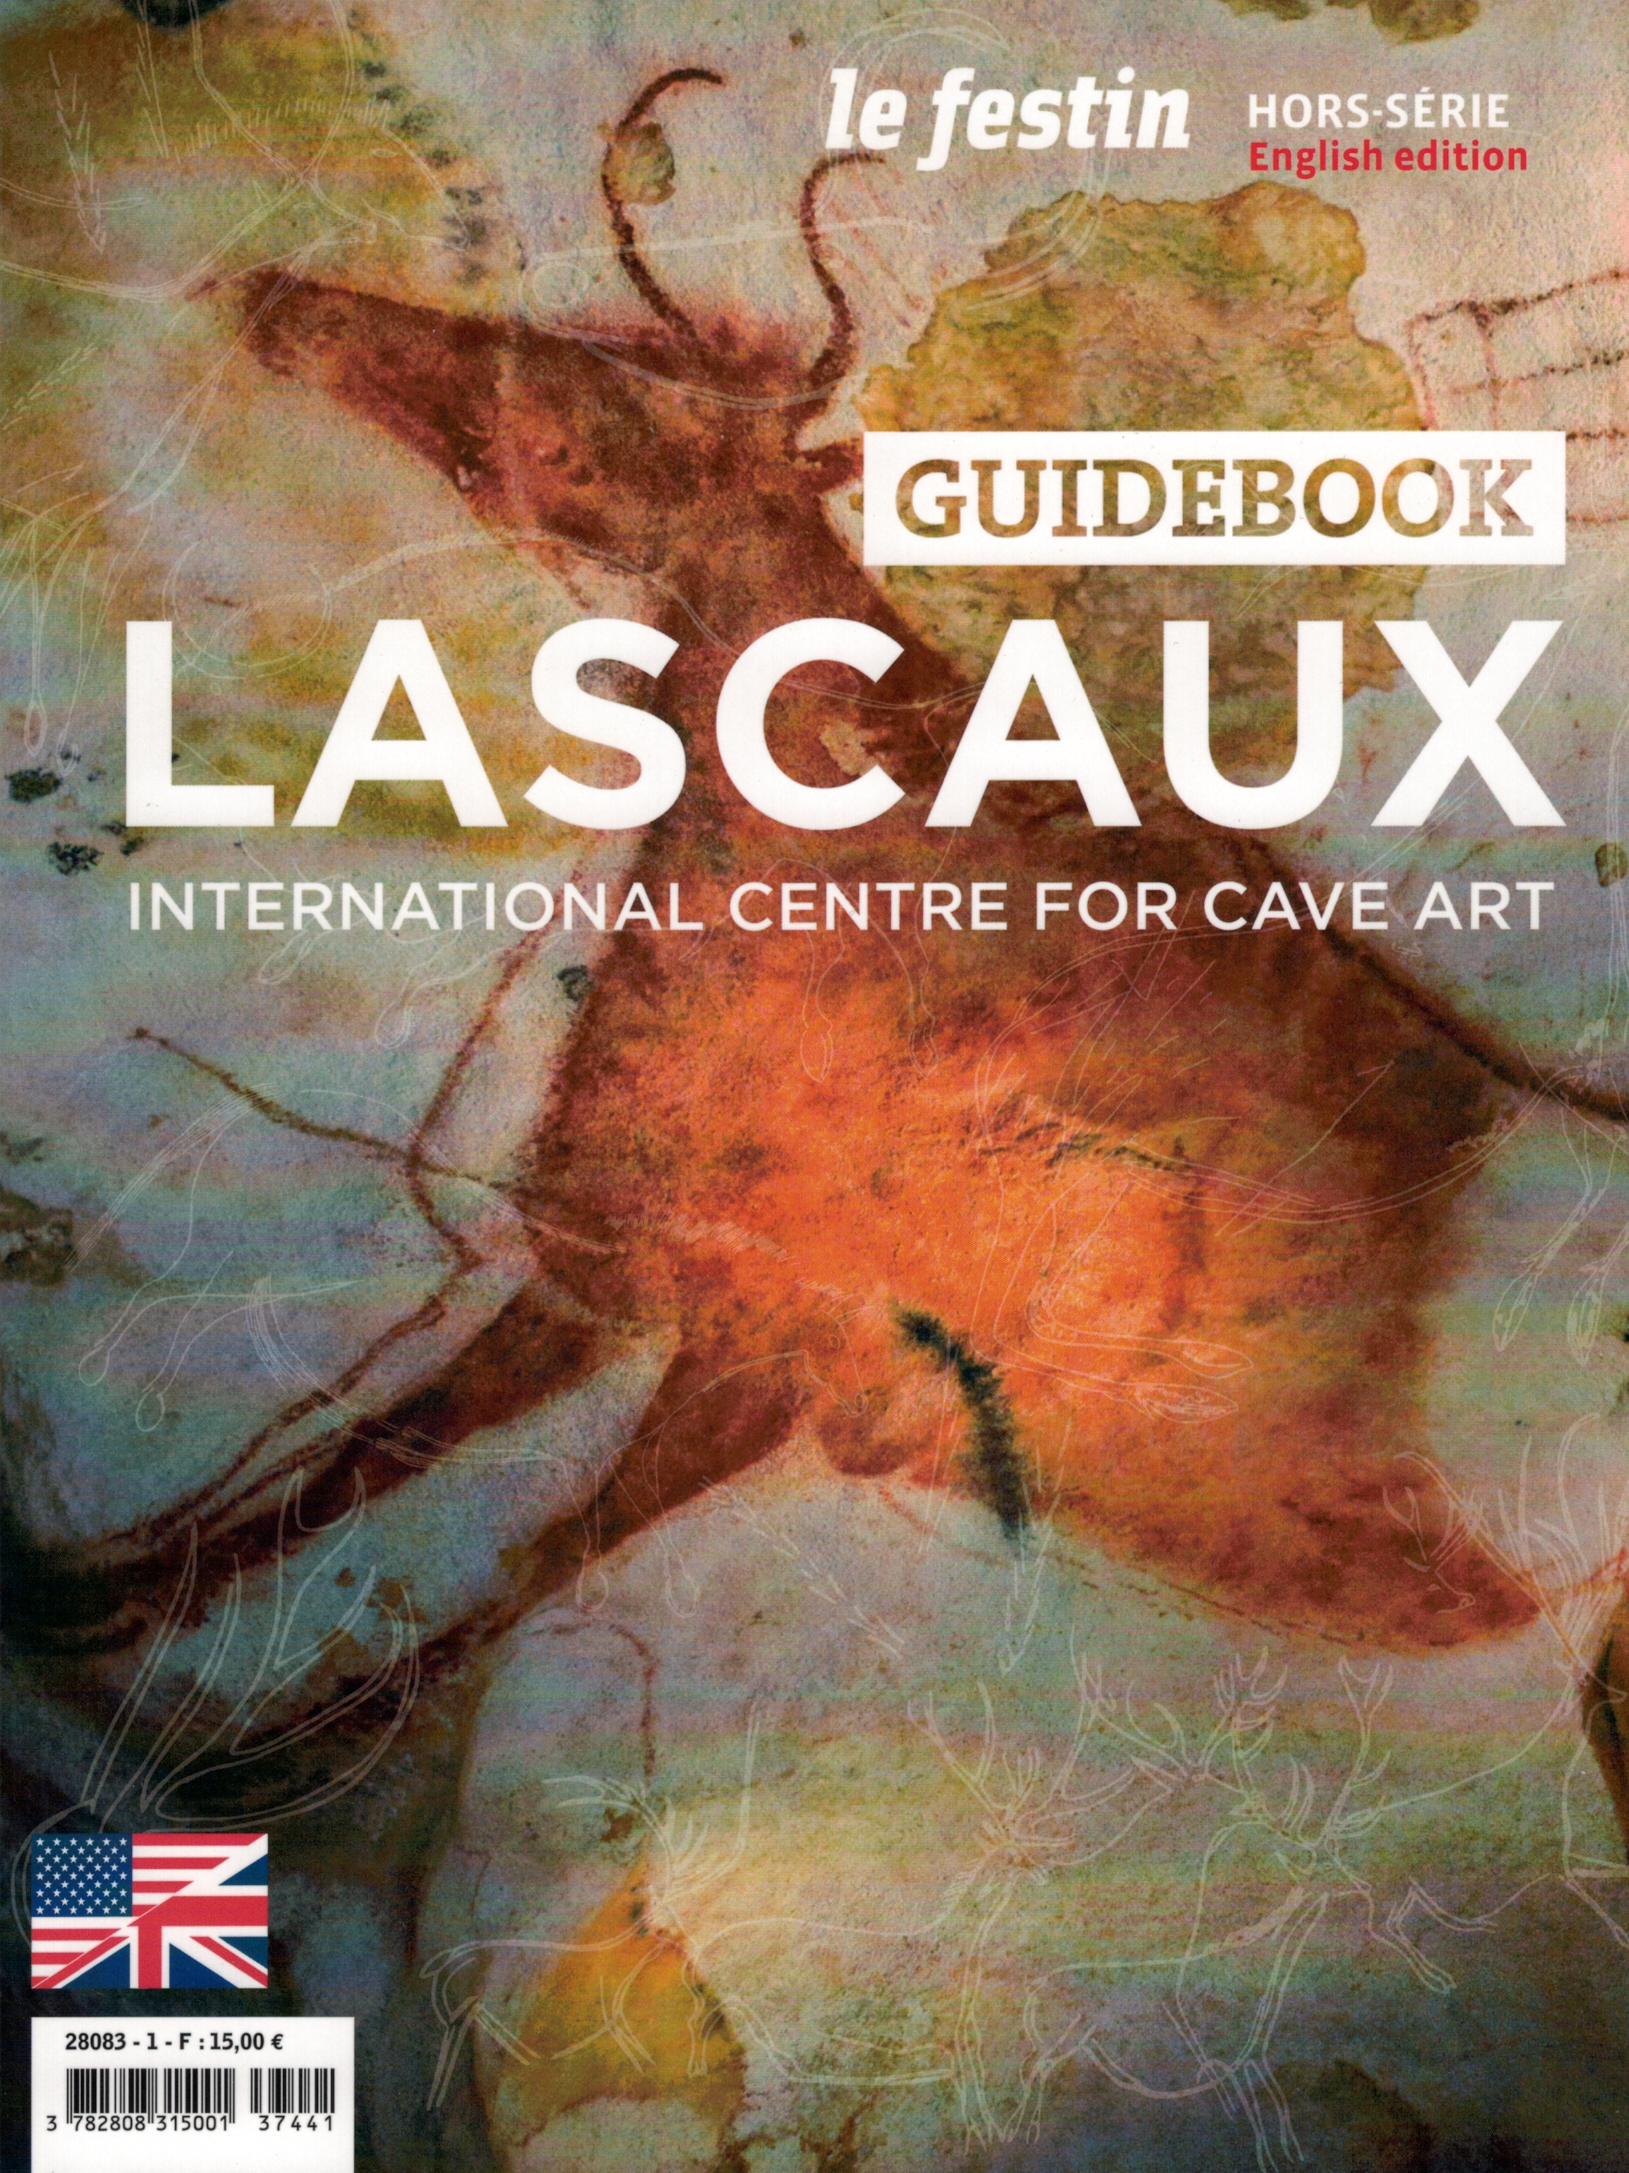 LASCAUX : INTERNATIONAL CENTRE FOR CAVE ART - GUIDEBOOK